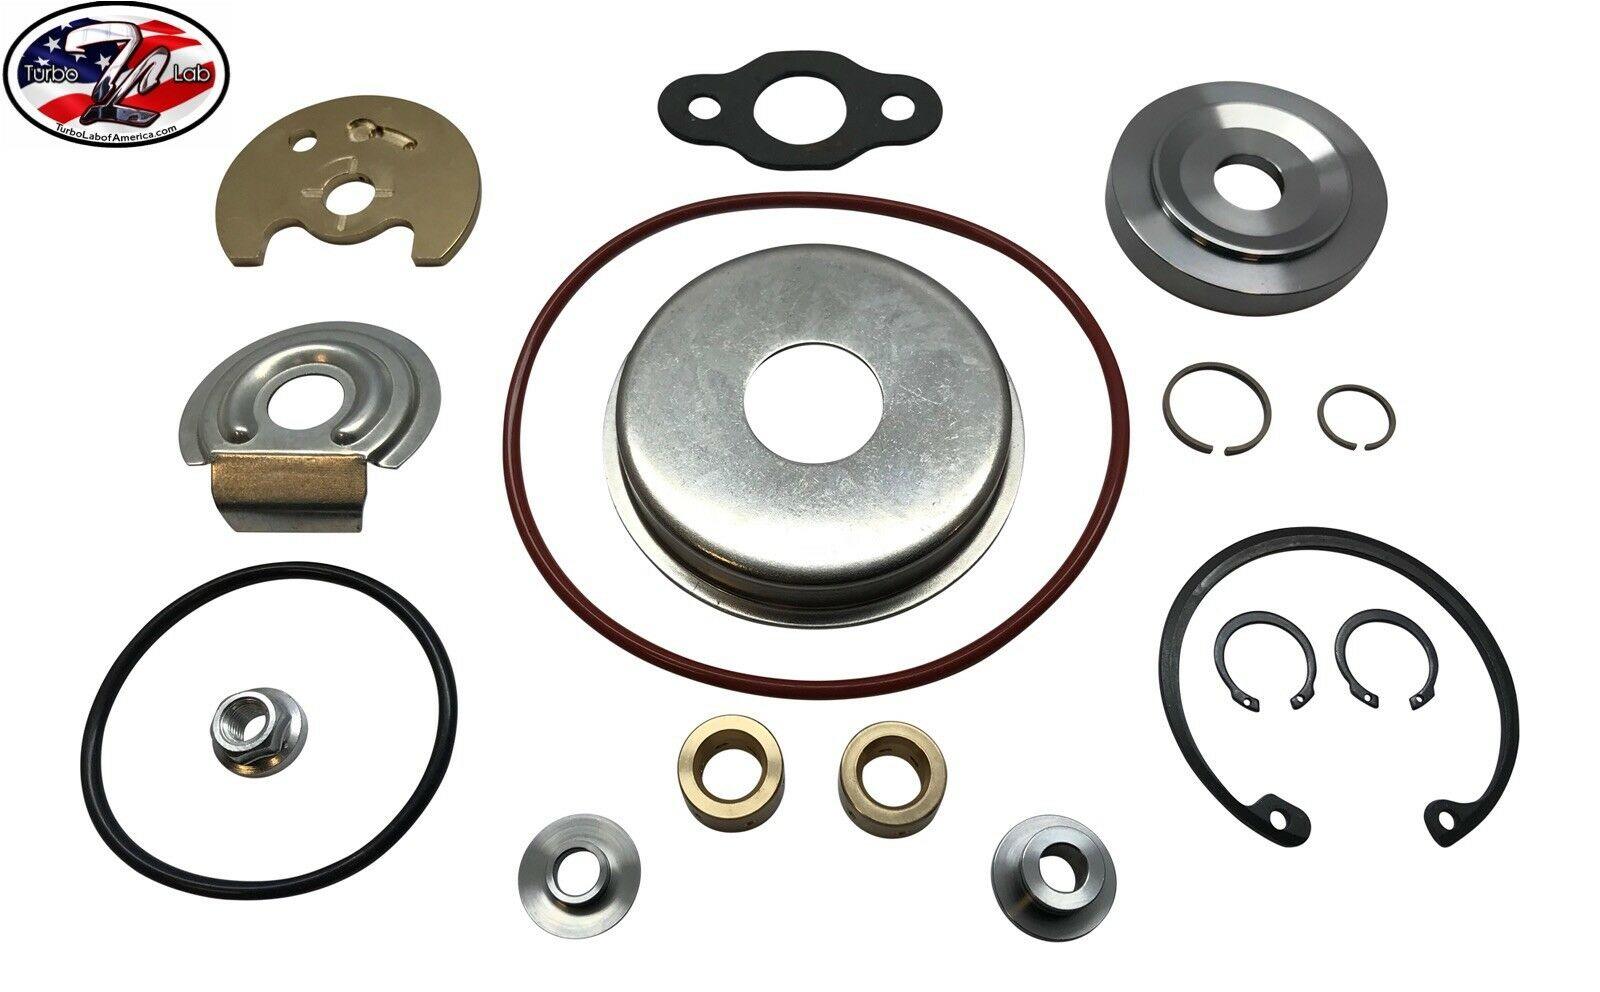 49378-01570 UPGRADED Turbo Rebuild Kit FOR EVO 9 8 MHI 16G 18G 20G FP Tdo5HR BBK